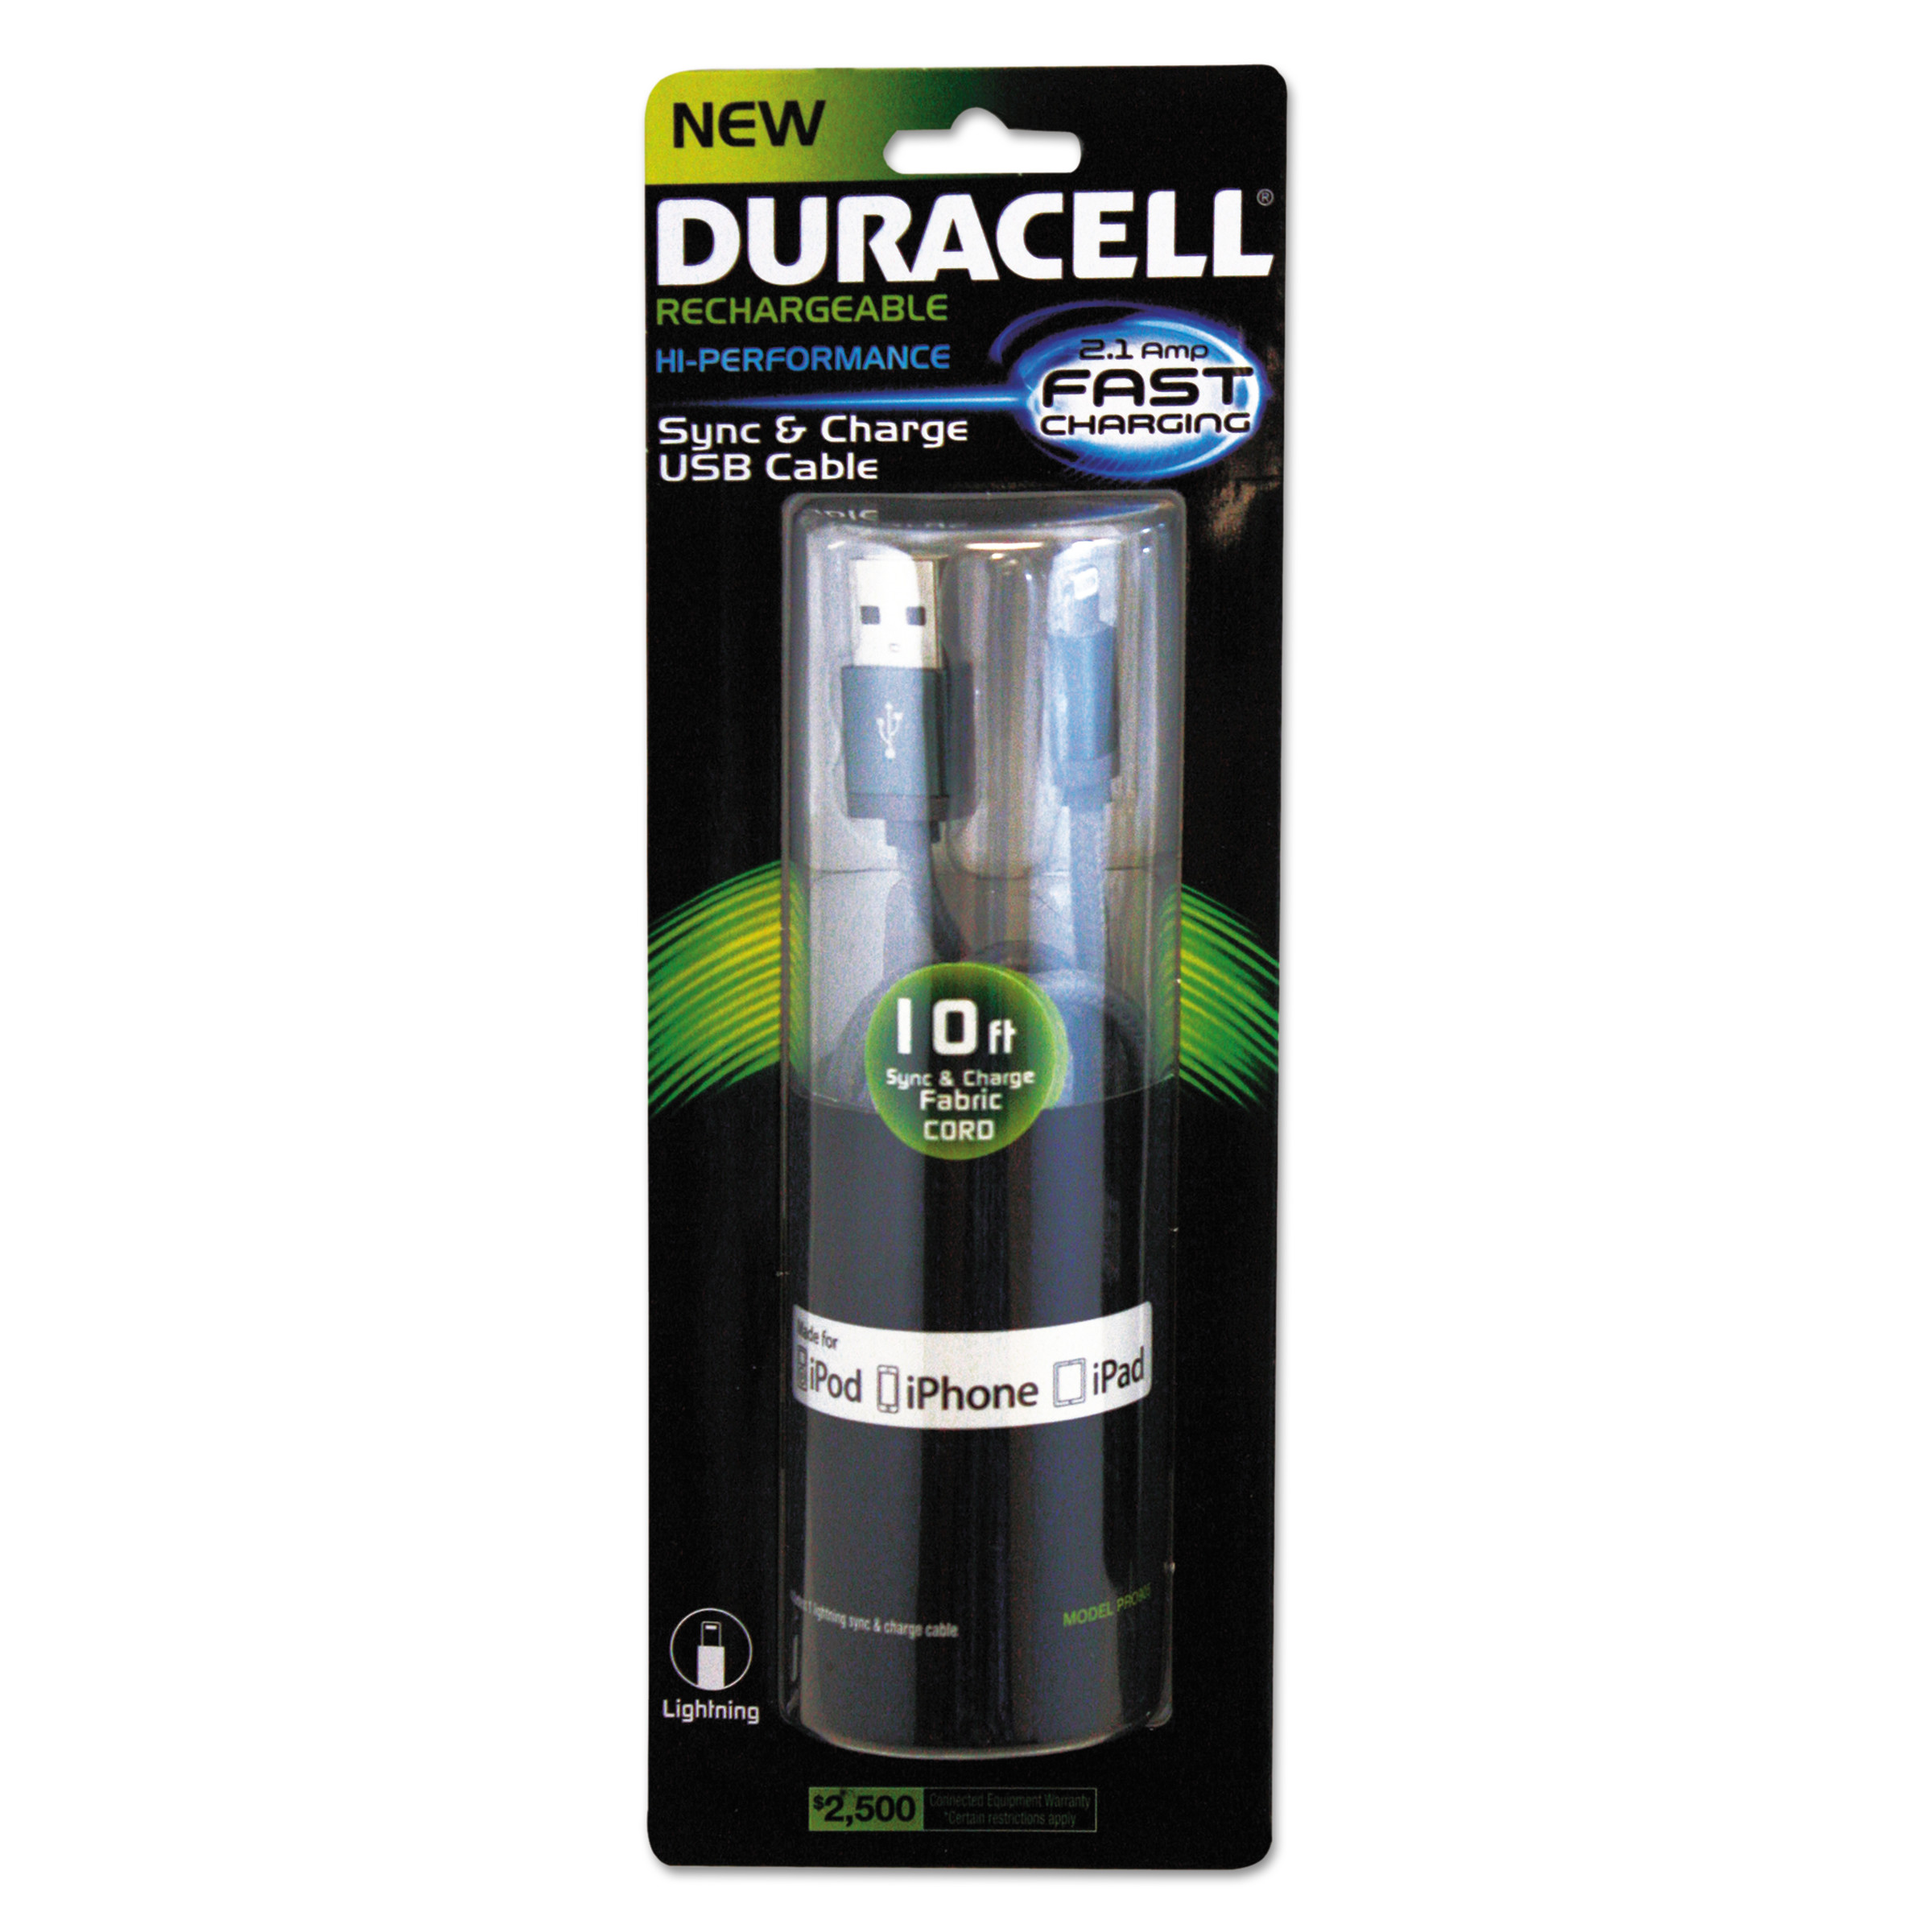 Duracell Sync And Charge Cable Micro Usb Iphone 10 Ft